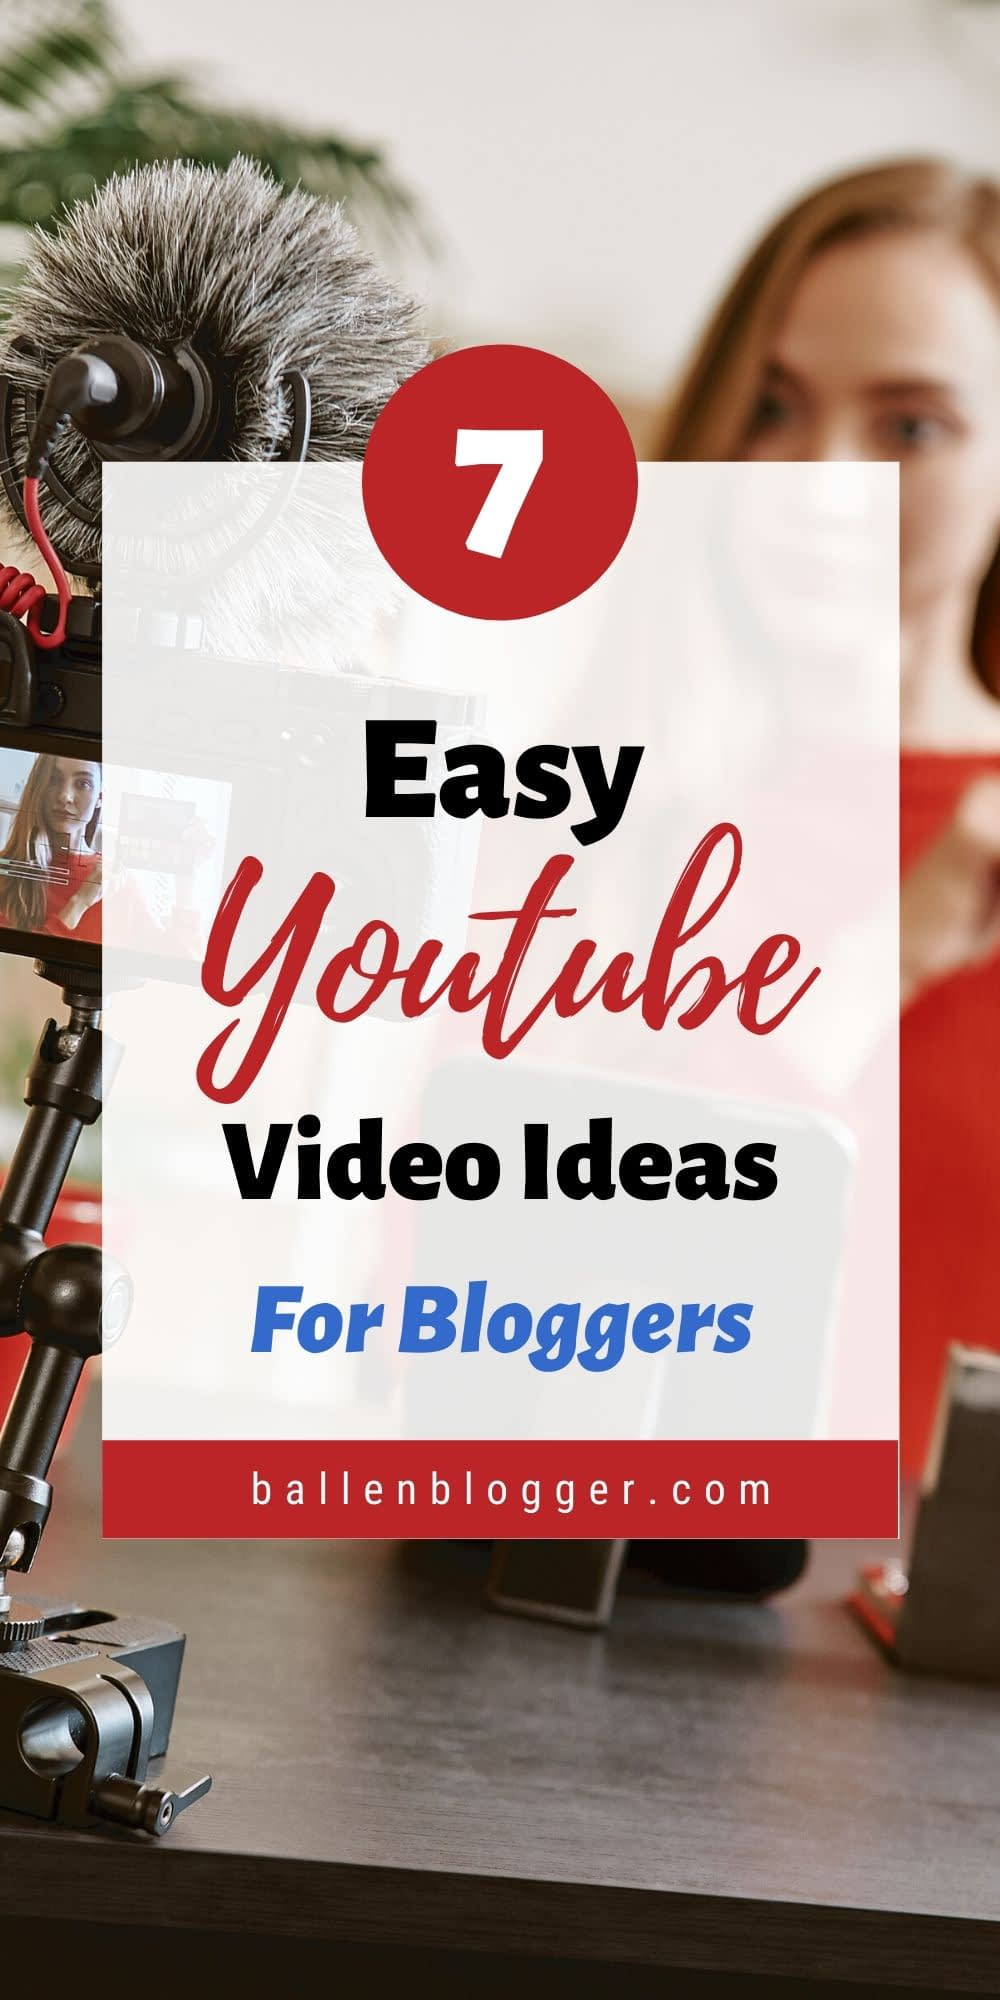 Eighty-five percent of U.S. adults now watch online videos, according to a report by Statista. You can use this trend to your business's advantage by creating marketing videos like these Youtube Video Ideas.